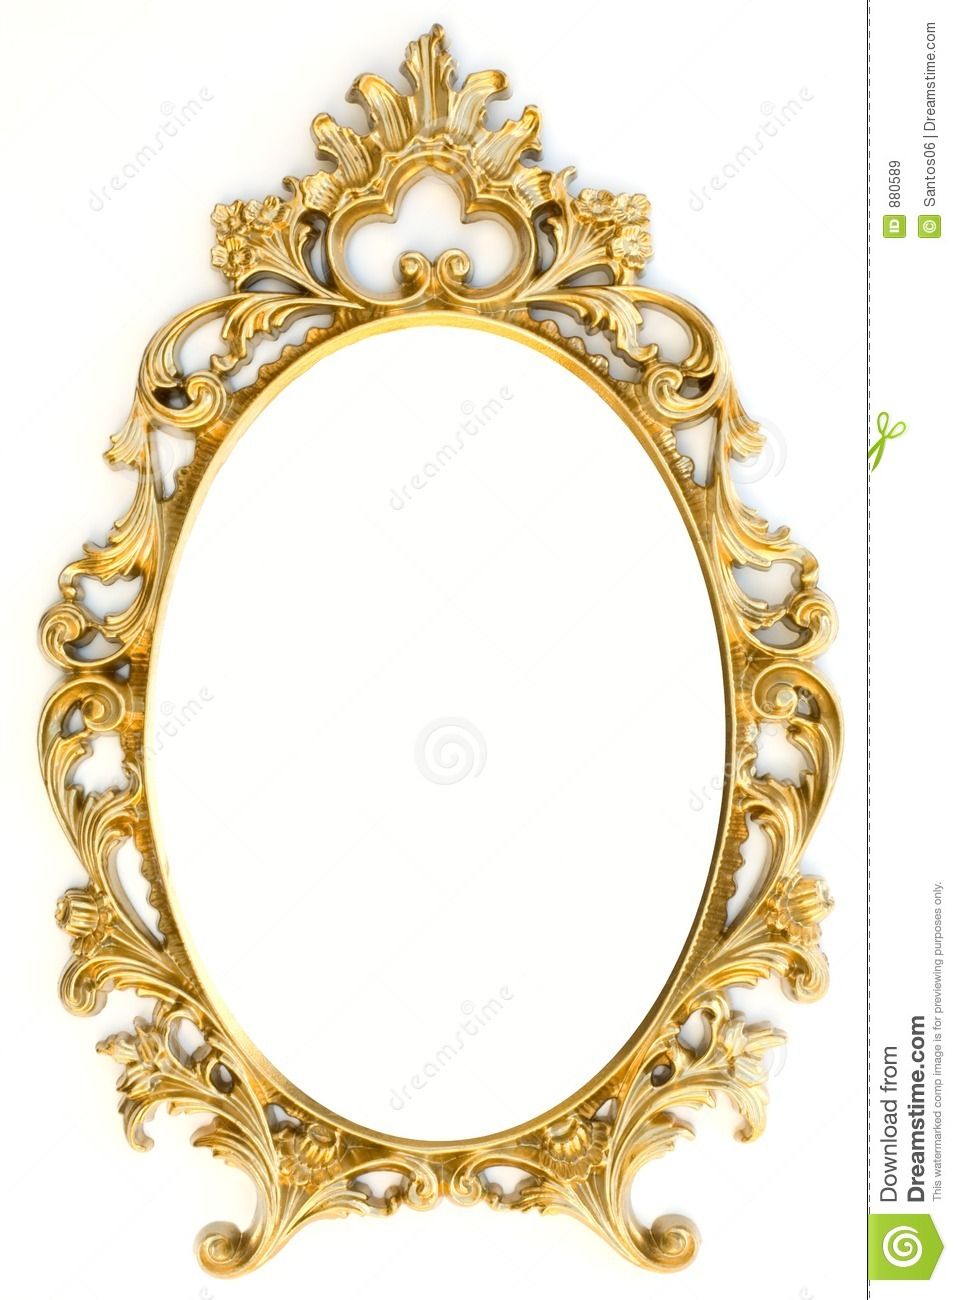 Golden Picture Frame Royalty Free Stock Images - Image: 880589